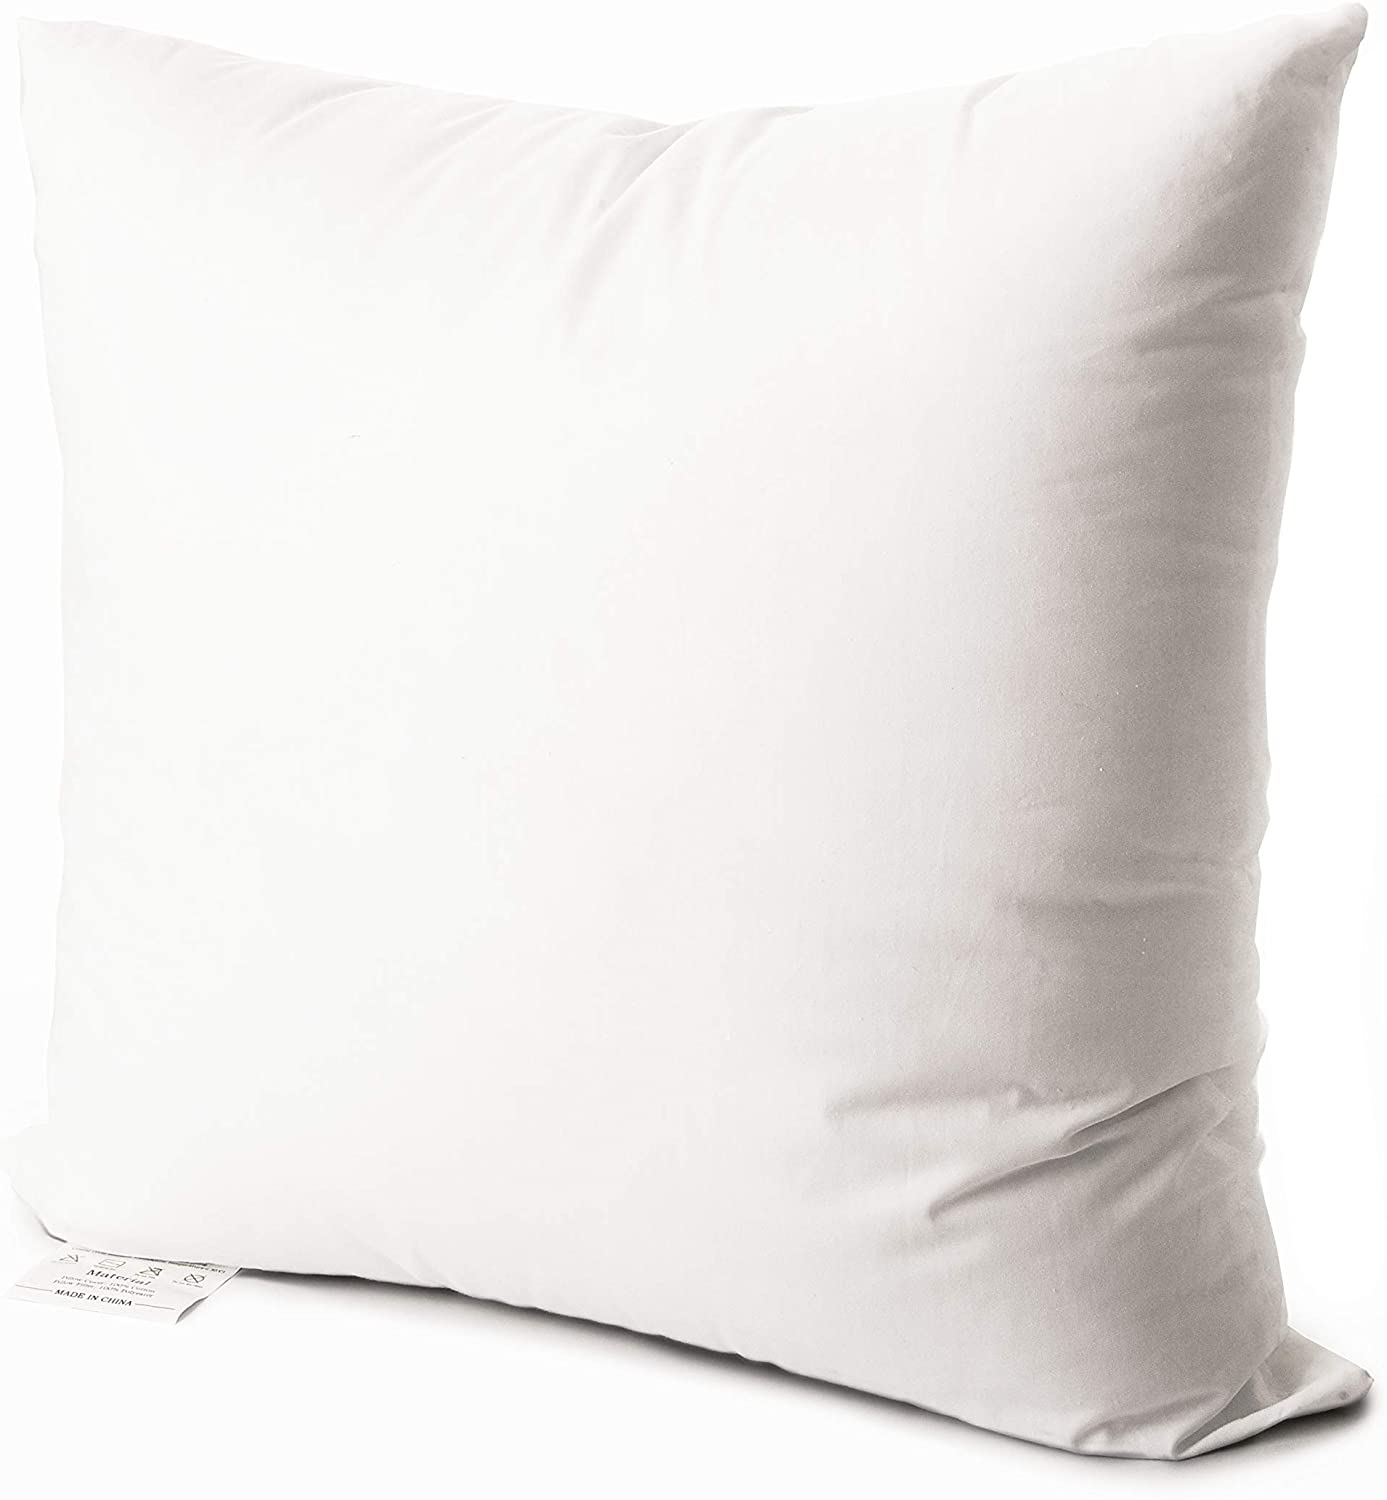 Edow Luxury Throw Pillow Insert, Soft Fluffy Down Alternative Polyester Square Form Decorative Pillow Insert,Sham Stuffer,Cotton Cover for Sofa, Couch,Bed and Car. (White, 26x26)